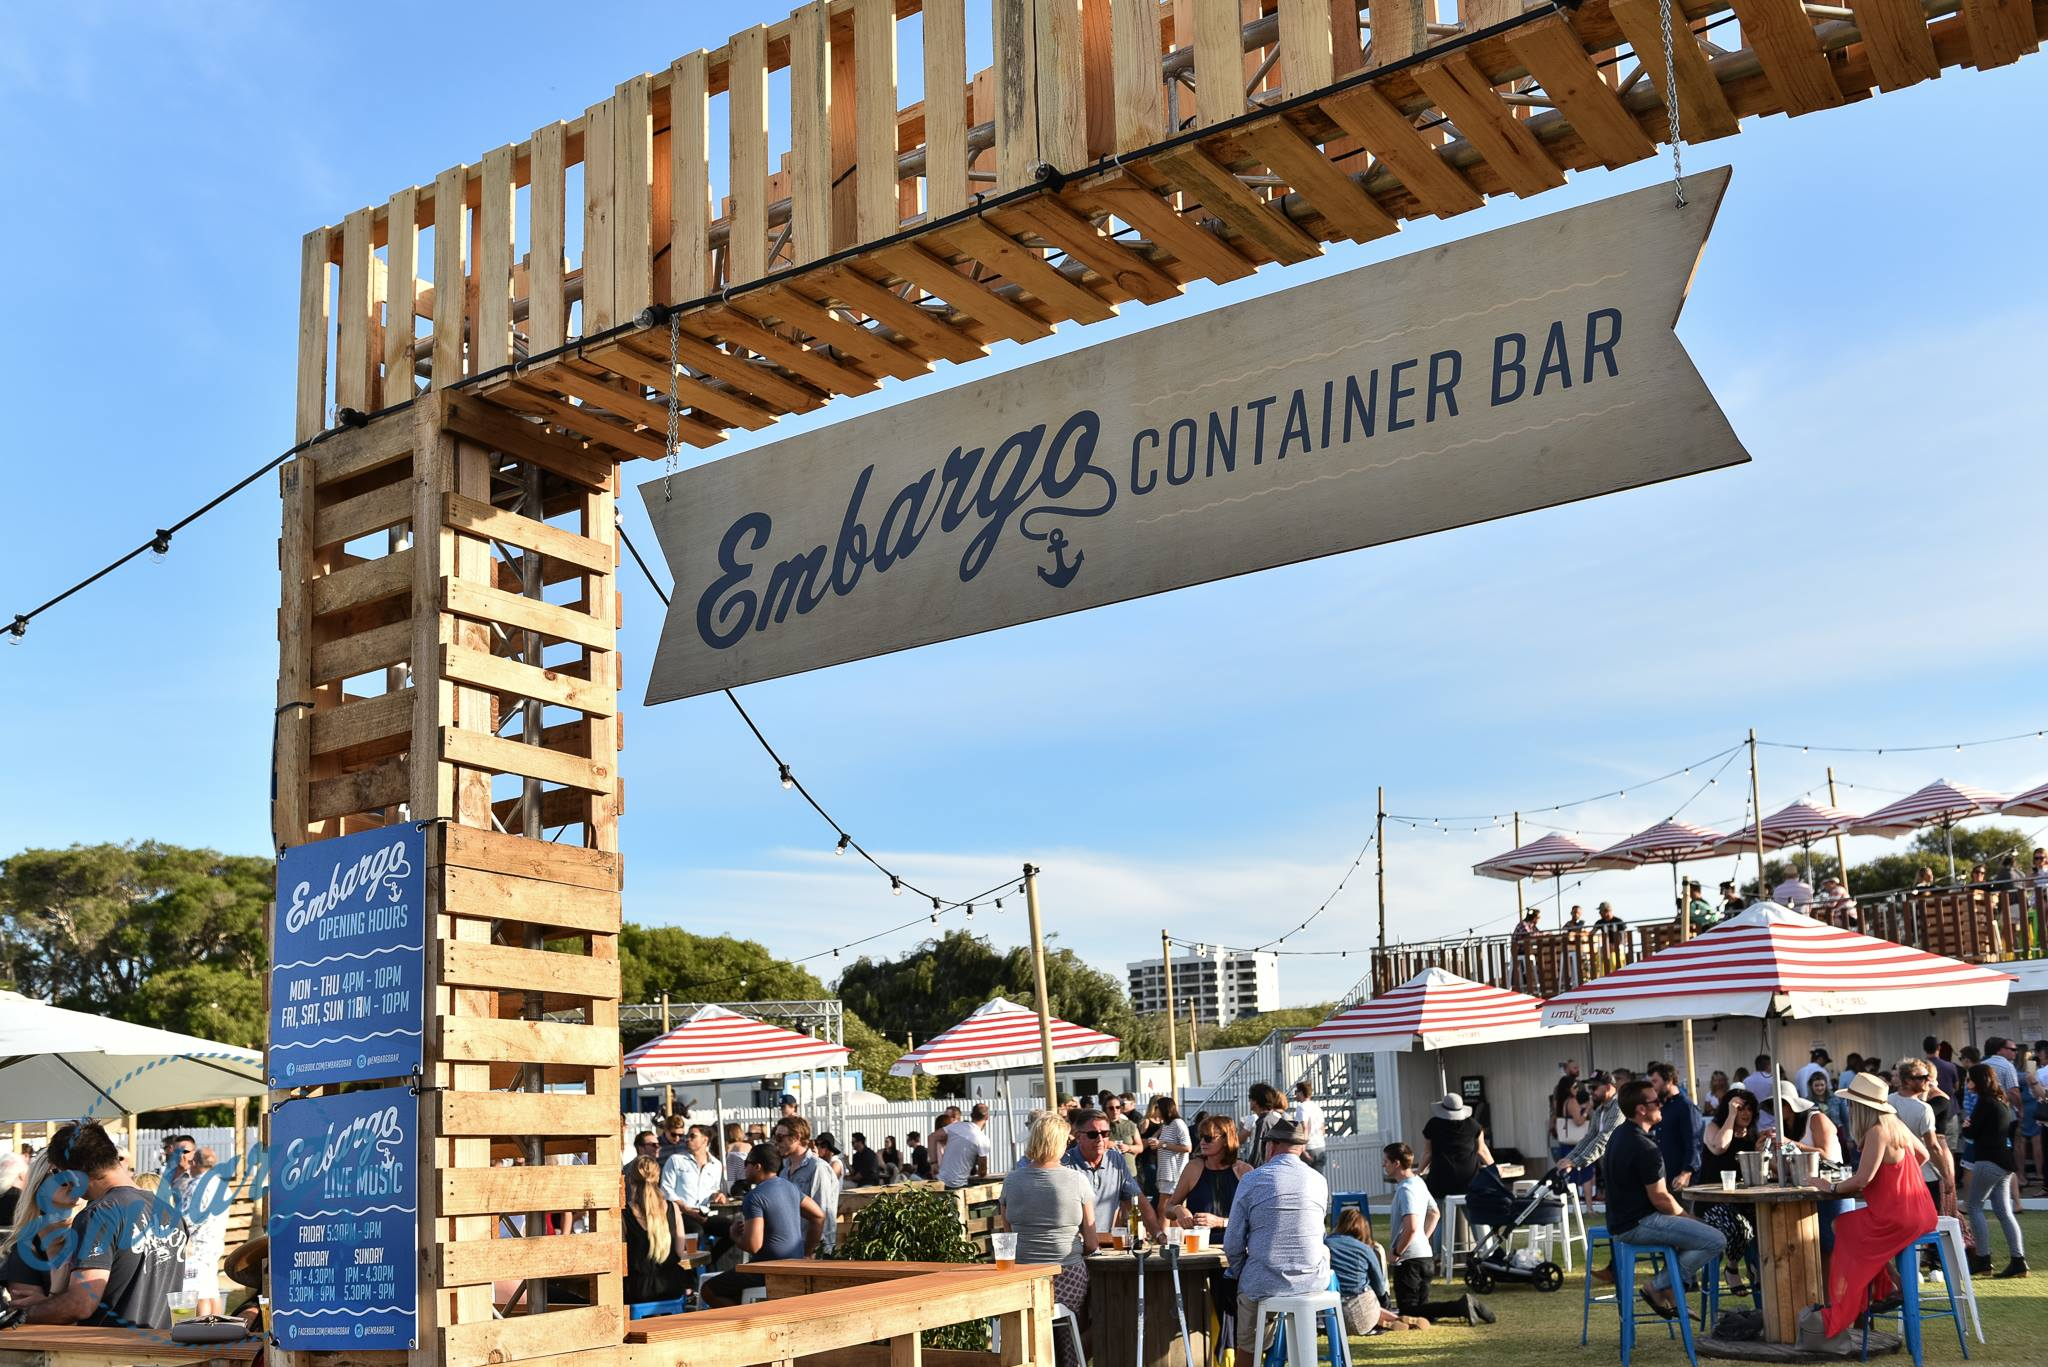 Embargo Container Bar set to sail from South Perth